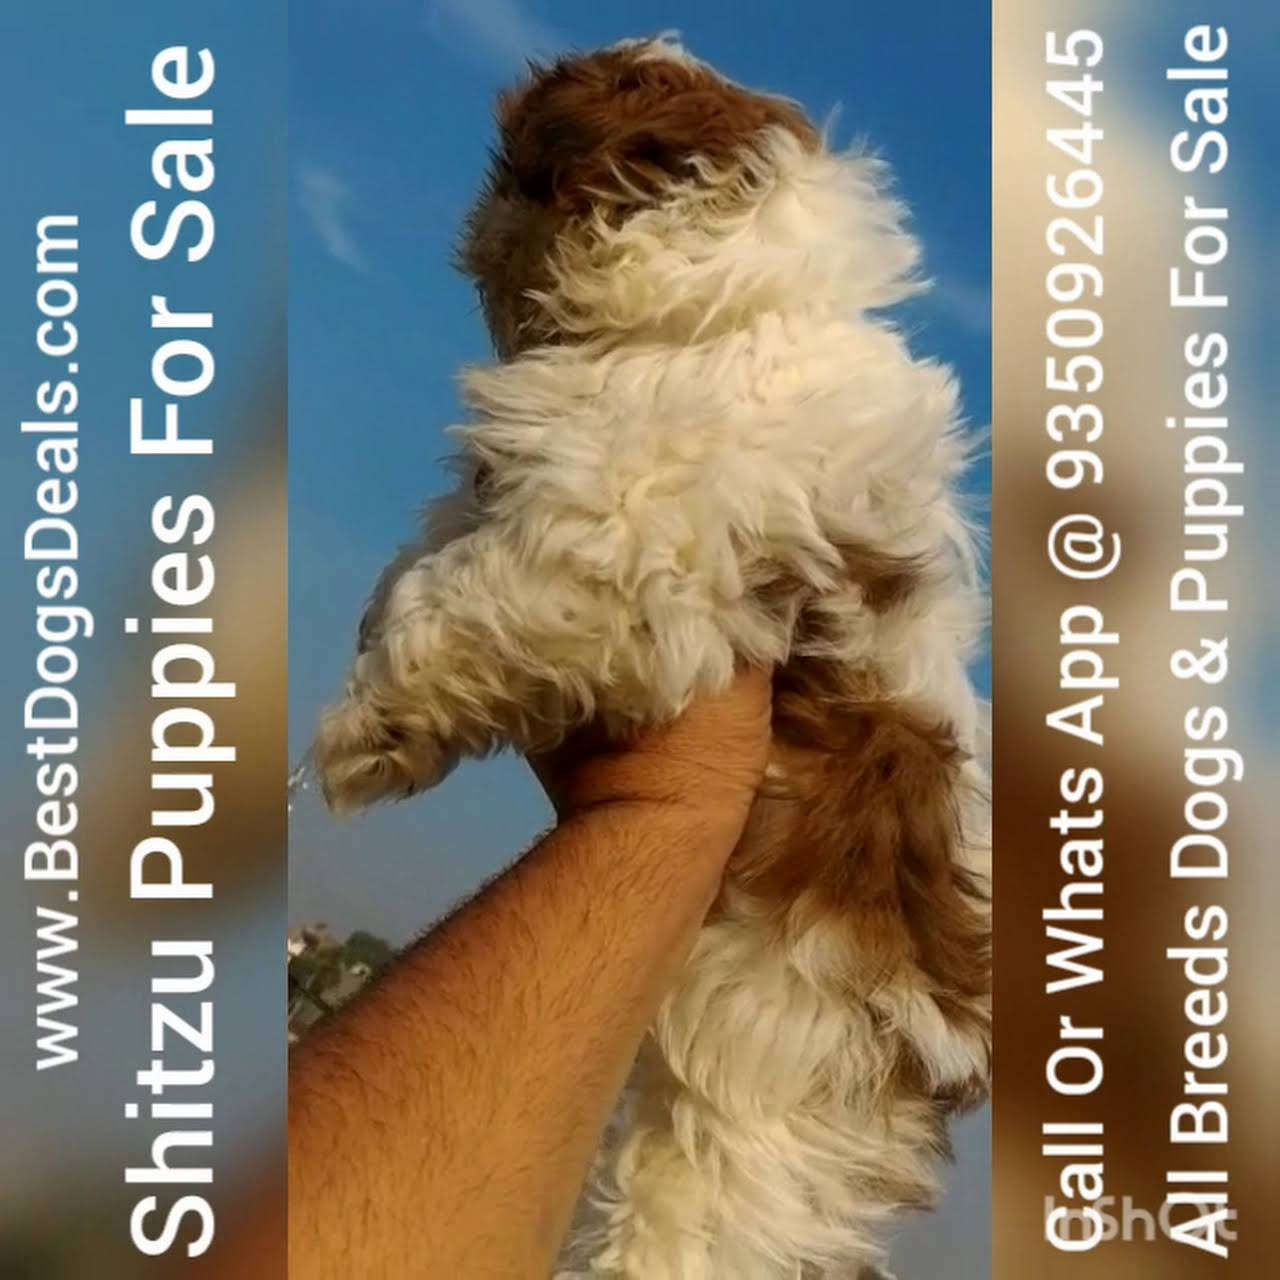 Bestdogsdeals Com Best Dog And Puppy For Sale Pet Shop In